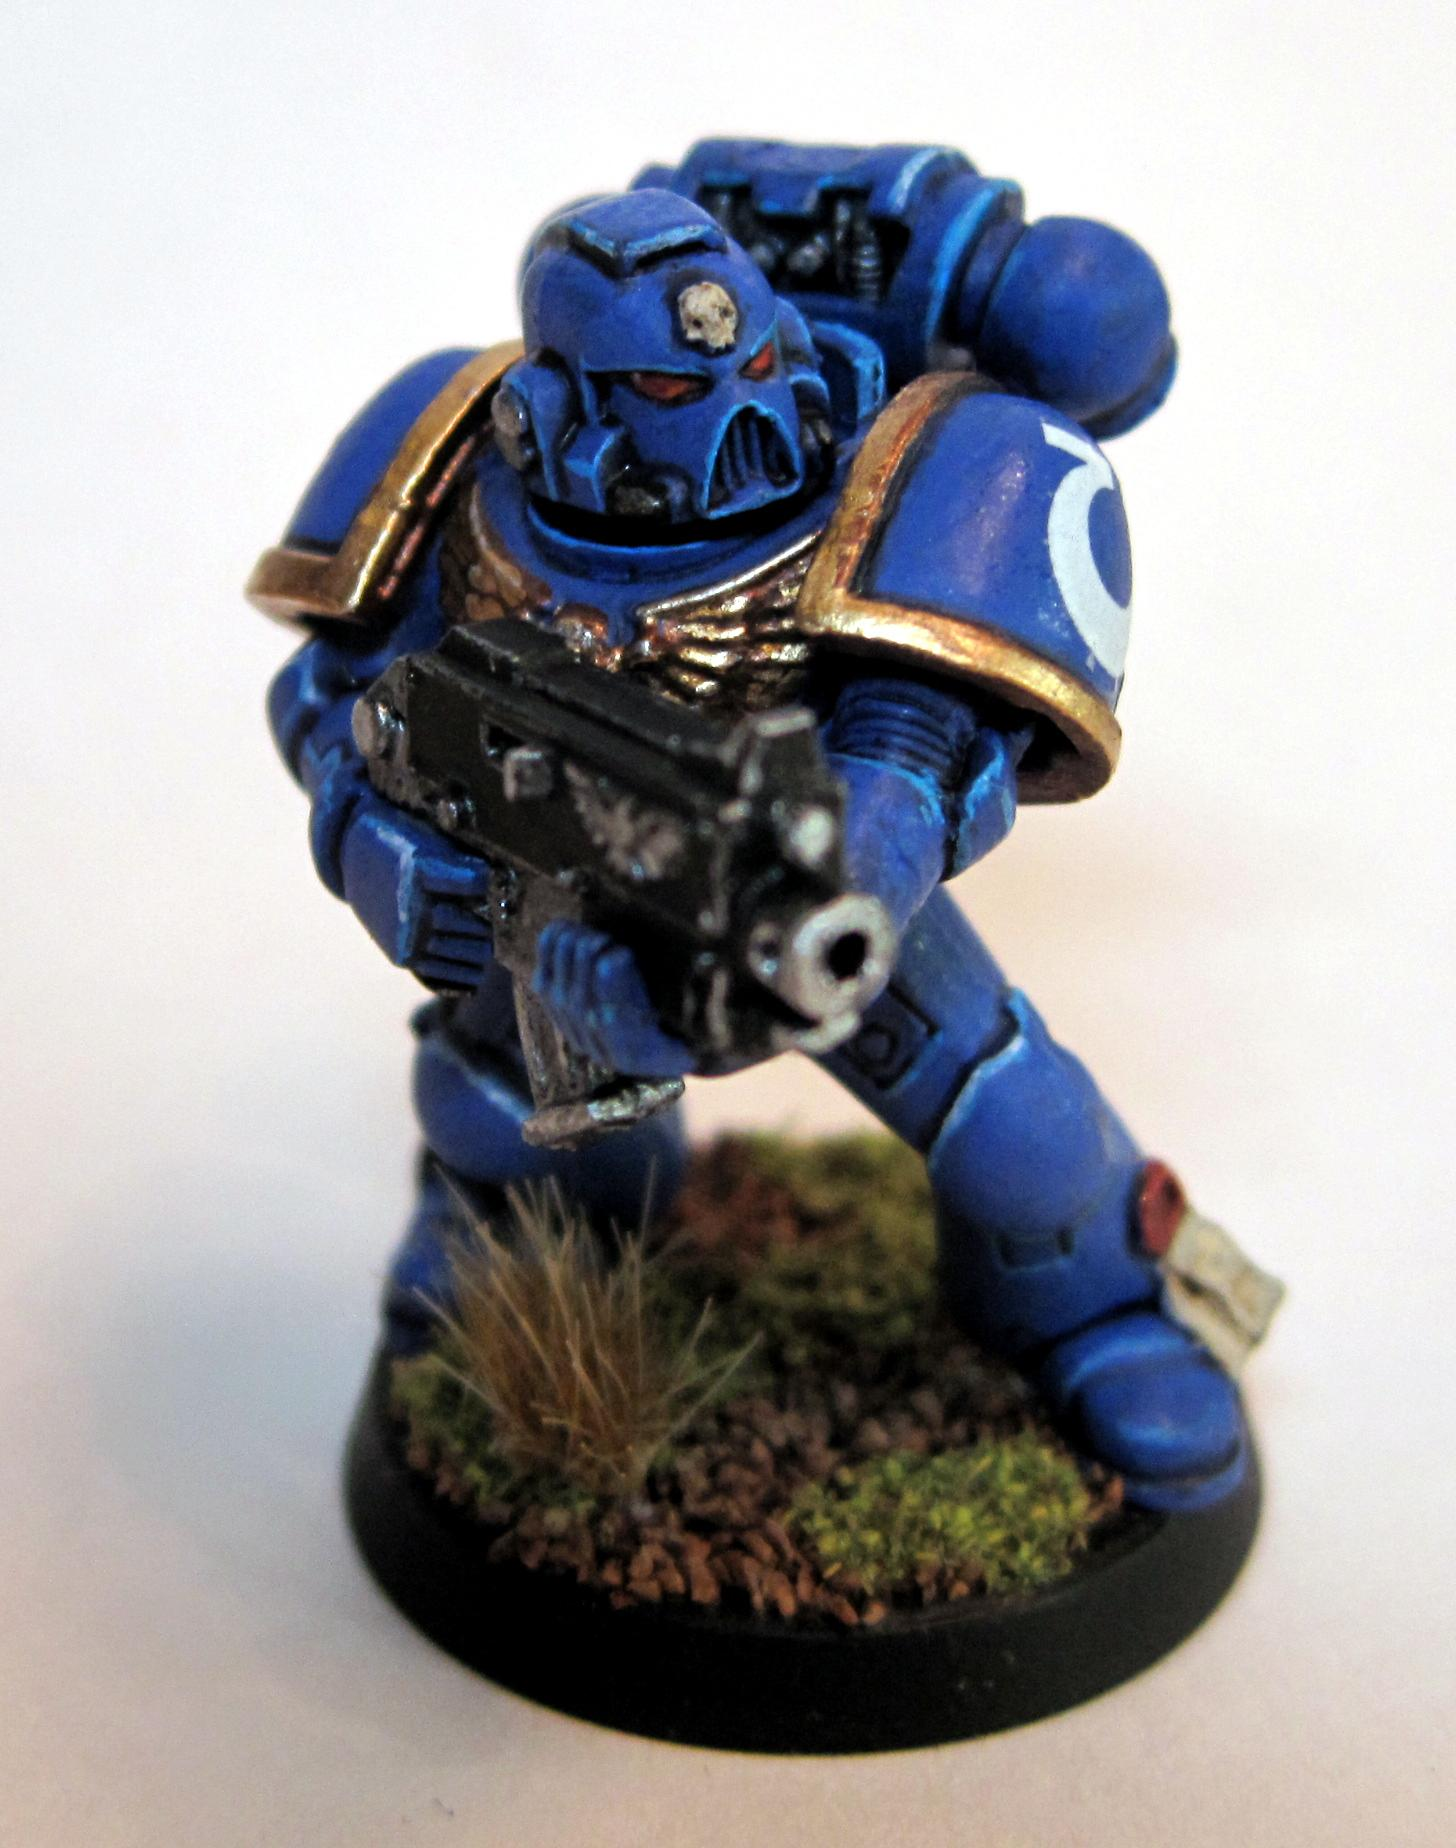 Space Marines, Ultramarines, Warhammer 40,000